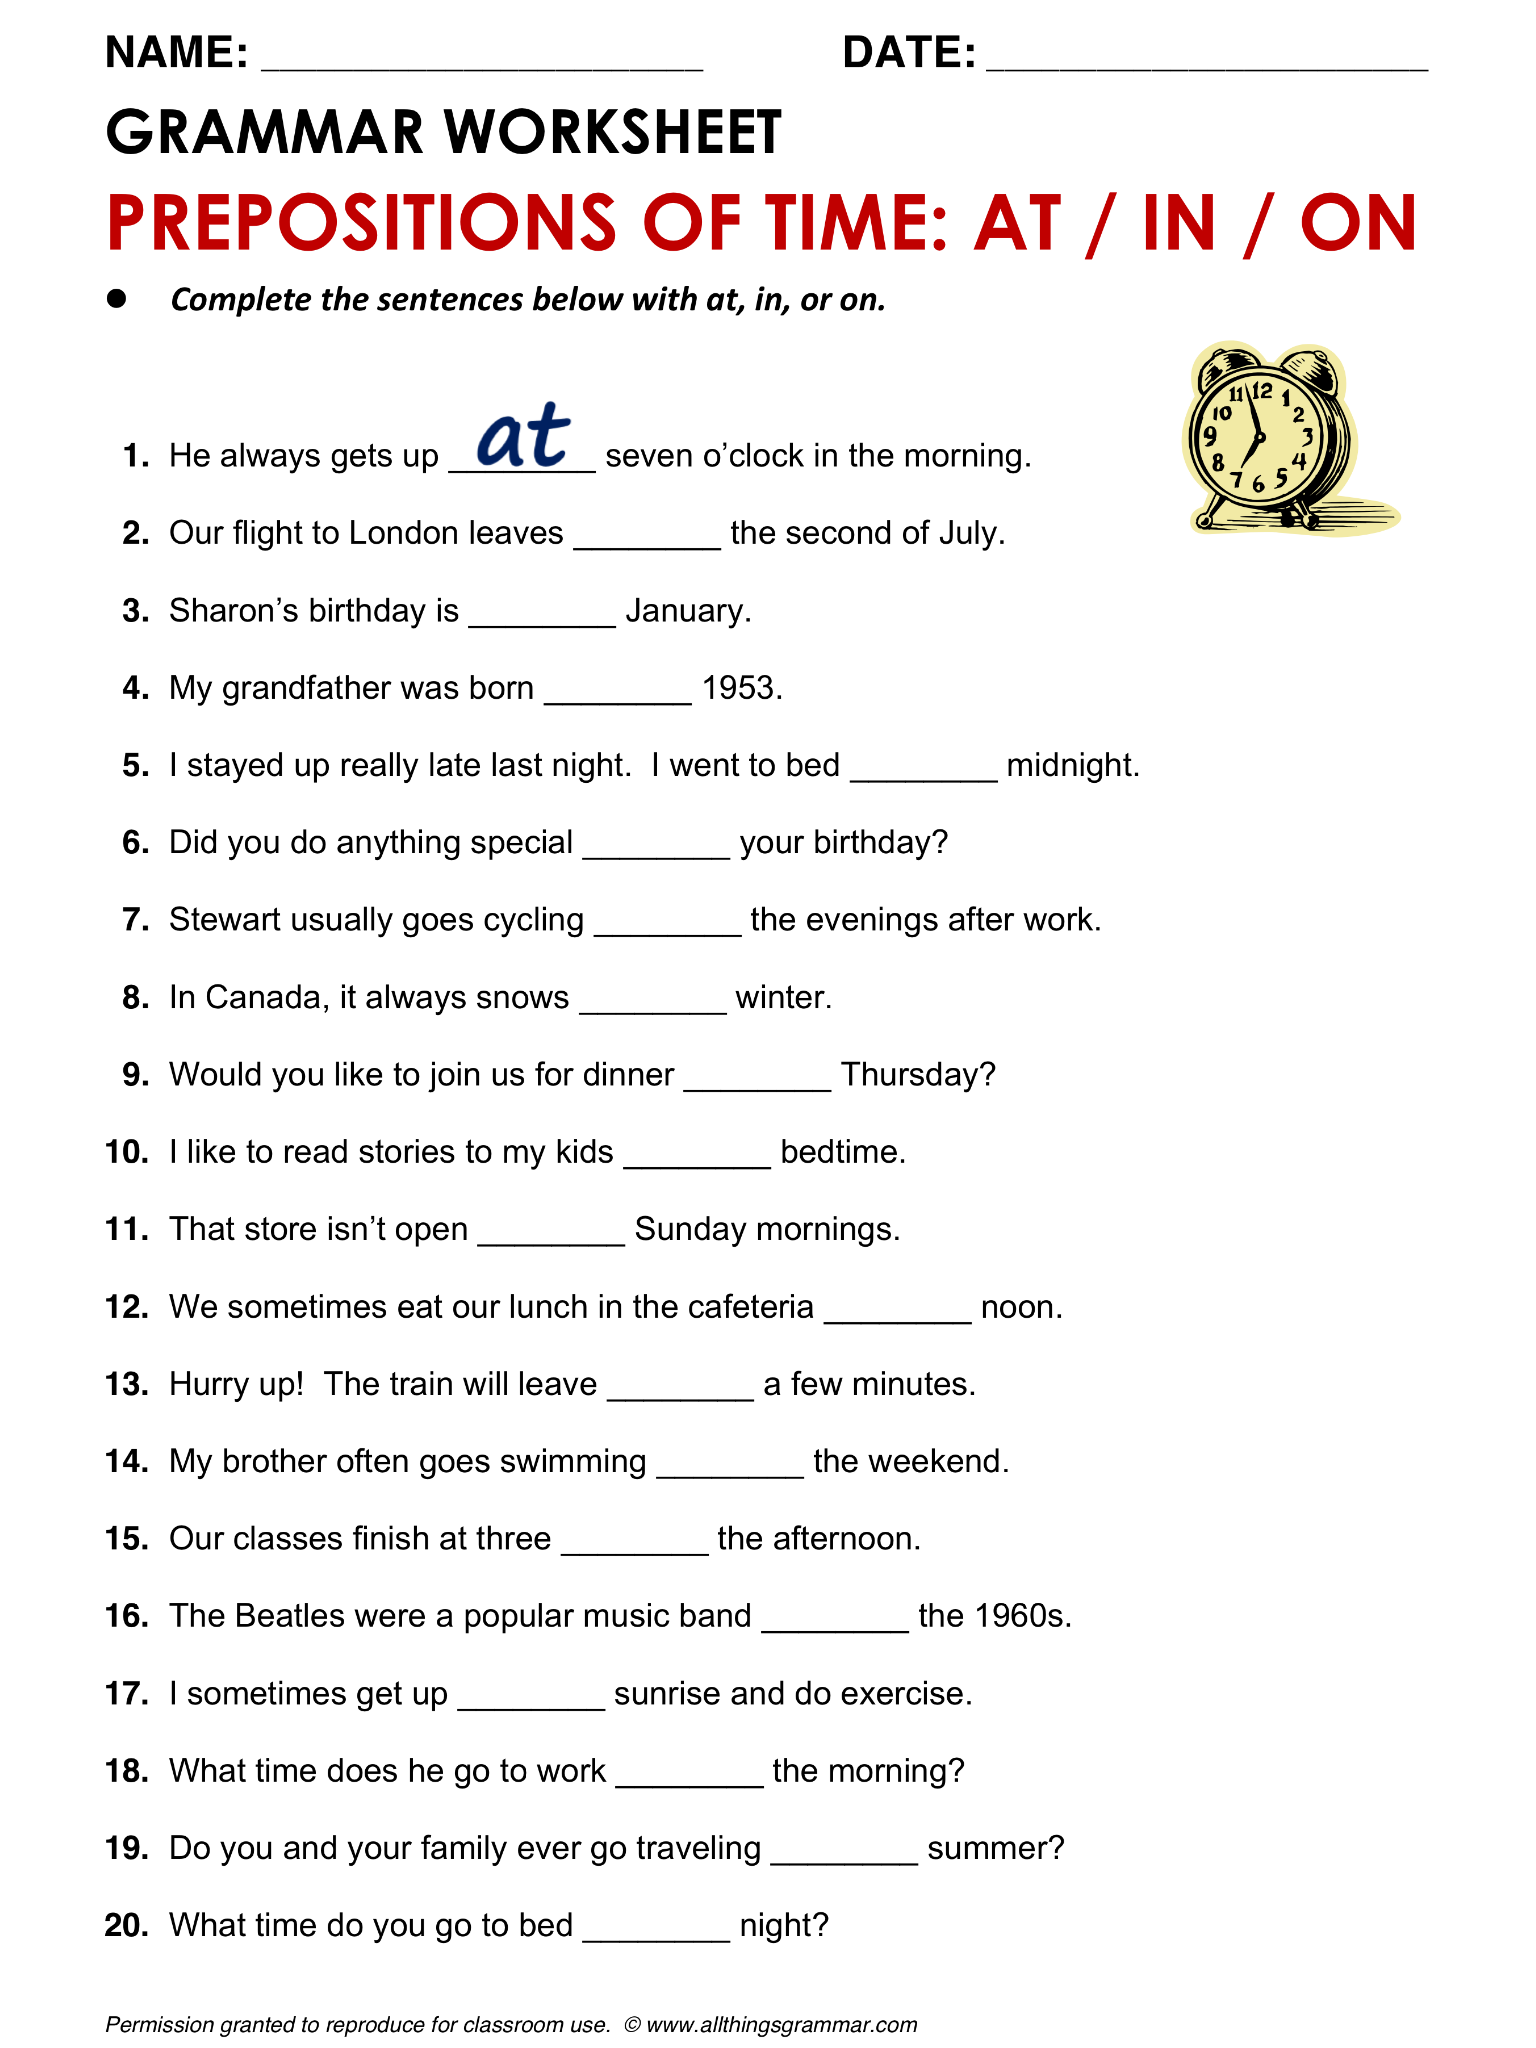 English Grammar Prepositions Of Time At In On